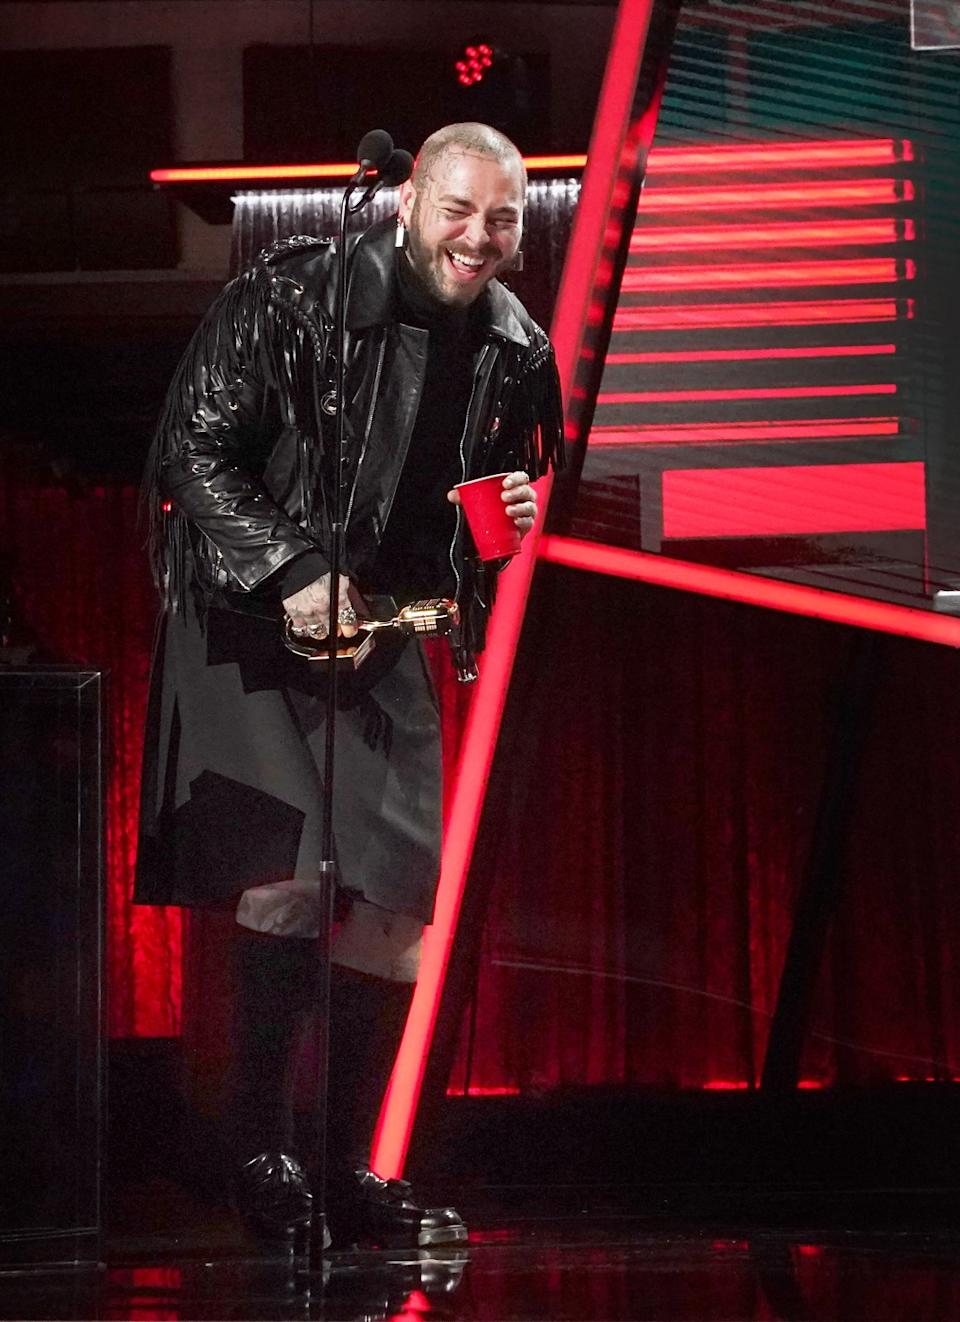 Post Malone laughs as he accepts an award.